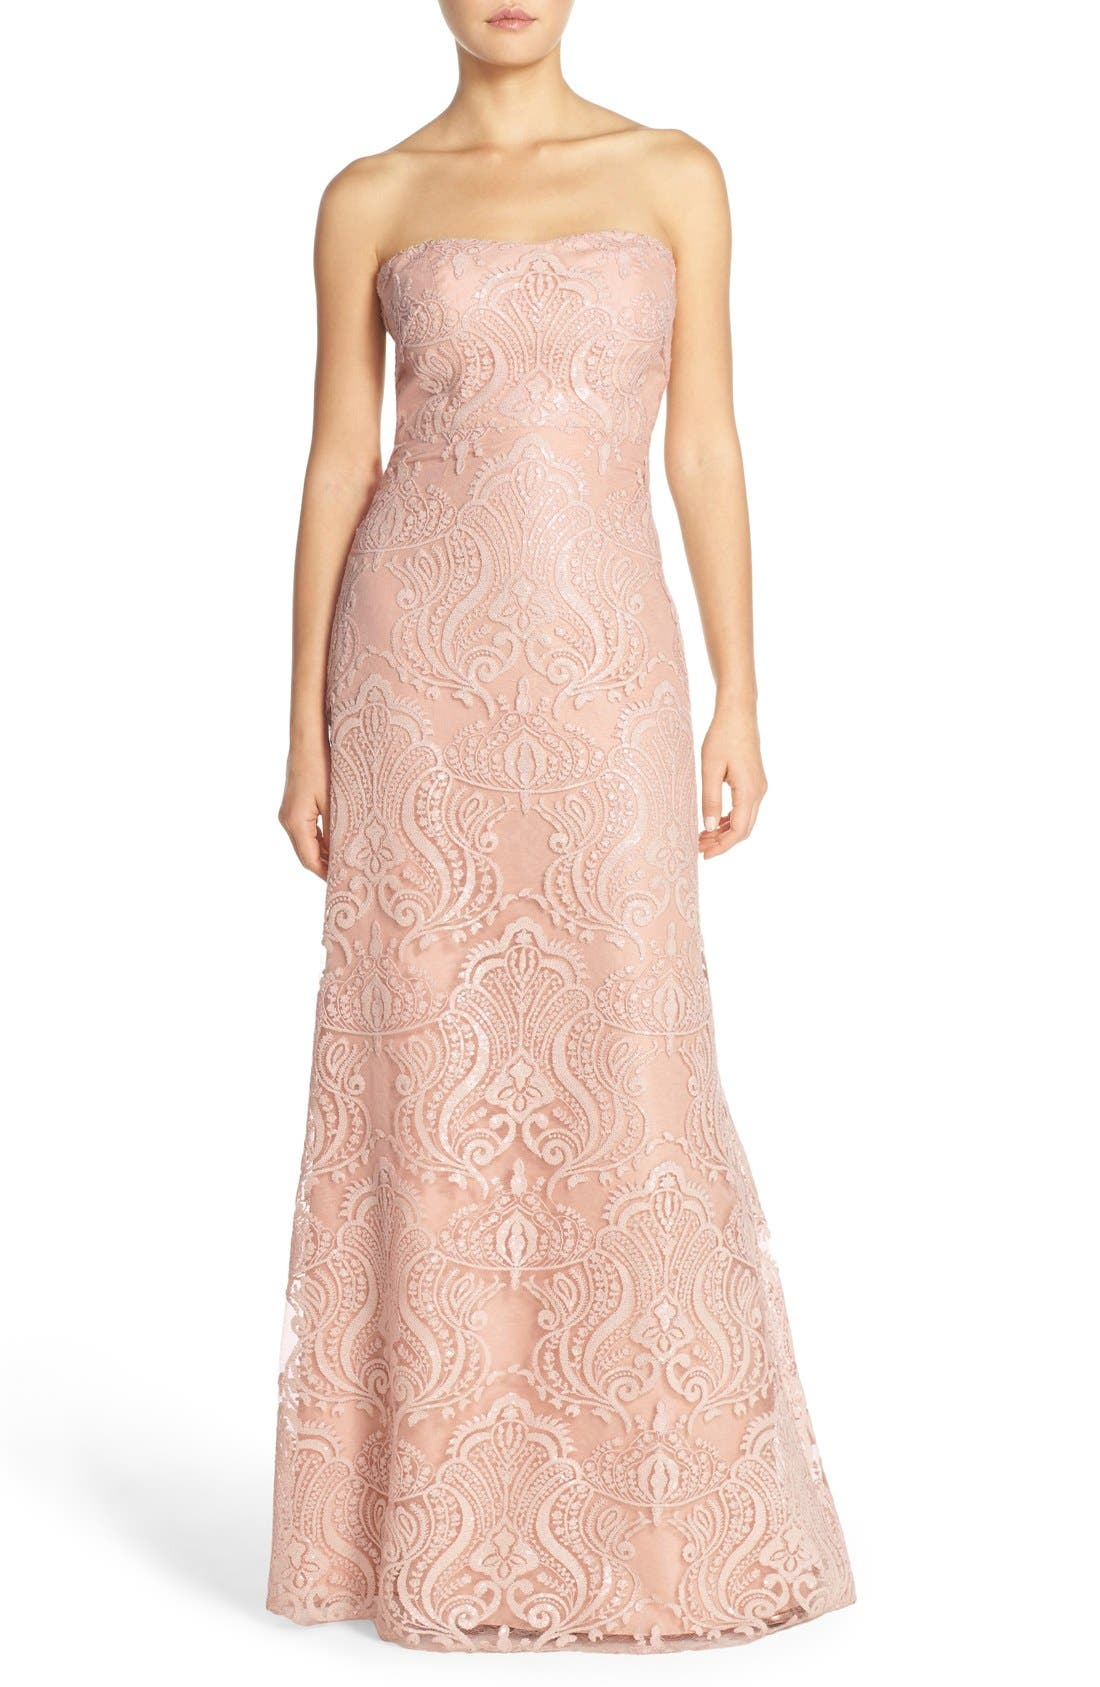 JENNY YOO 'Sadie' Sequin Lace Strapless A-Line Gown